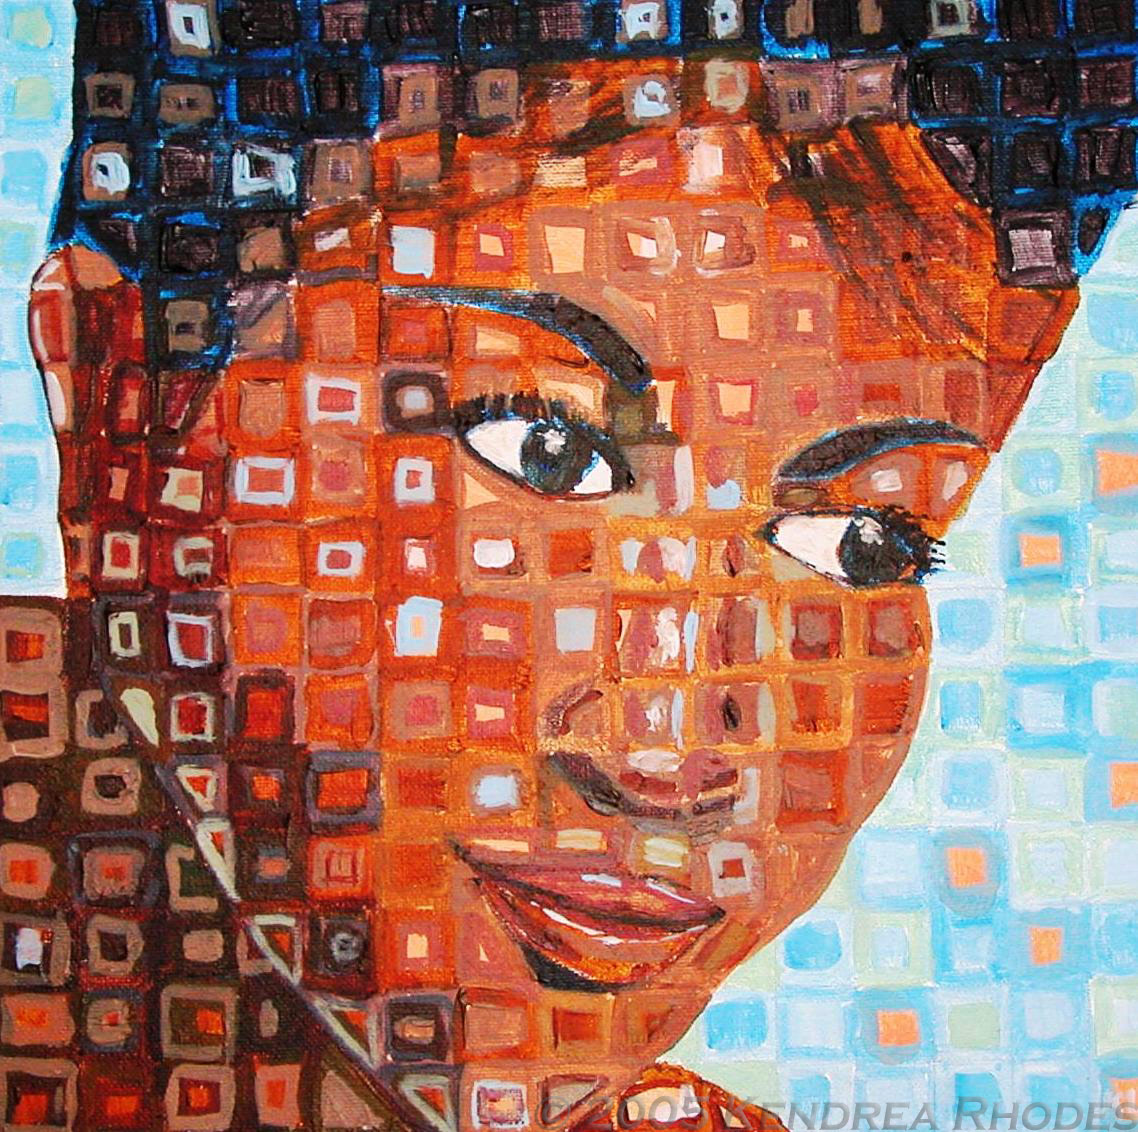 Aretha Franklin by ©Kendrea Rhodes for Out of the Blue exhibition